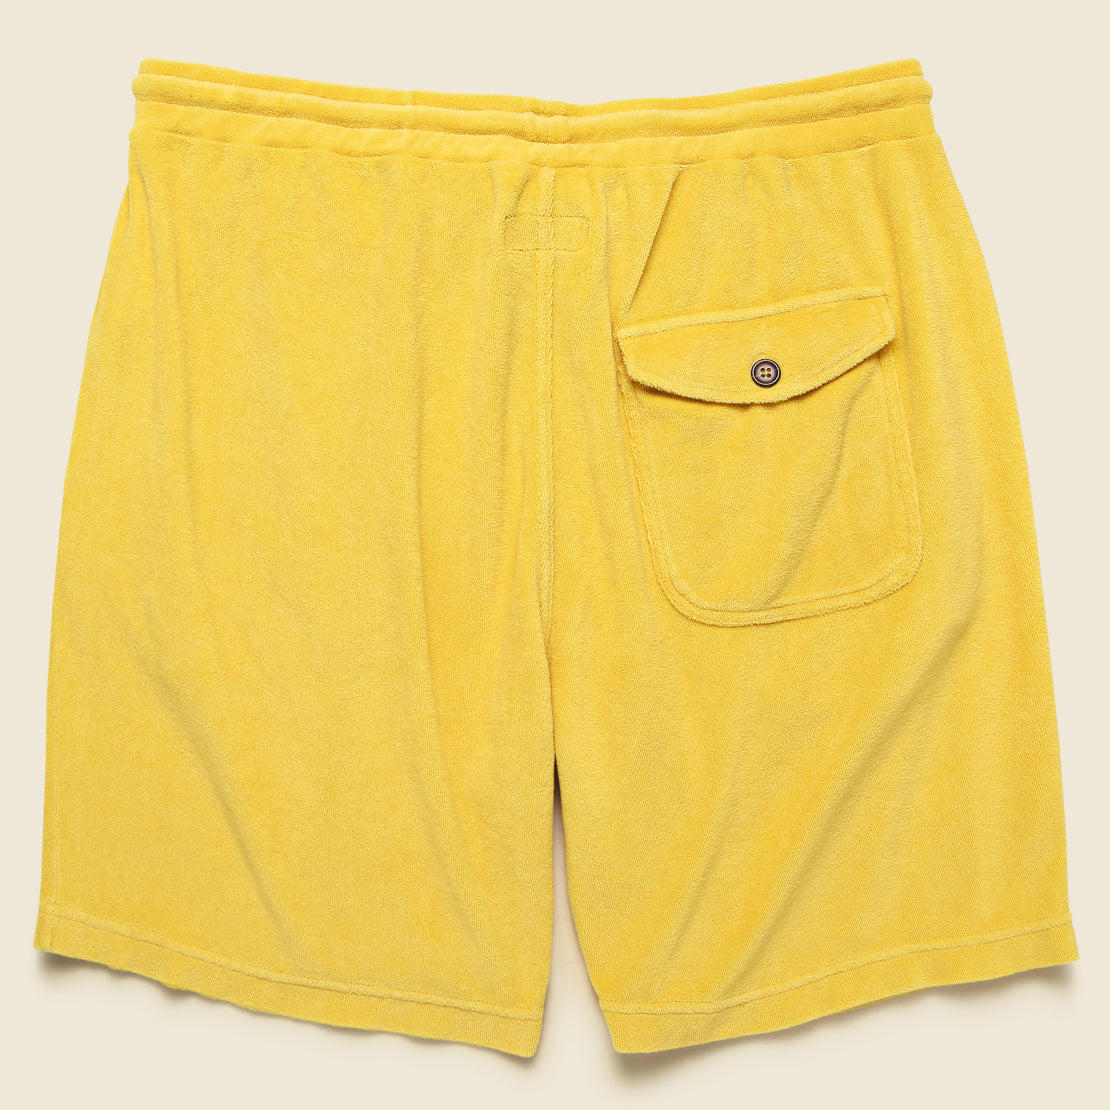 Terry Fleece Beach Short - Gold